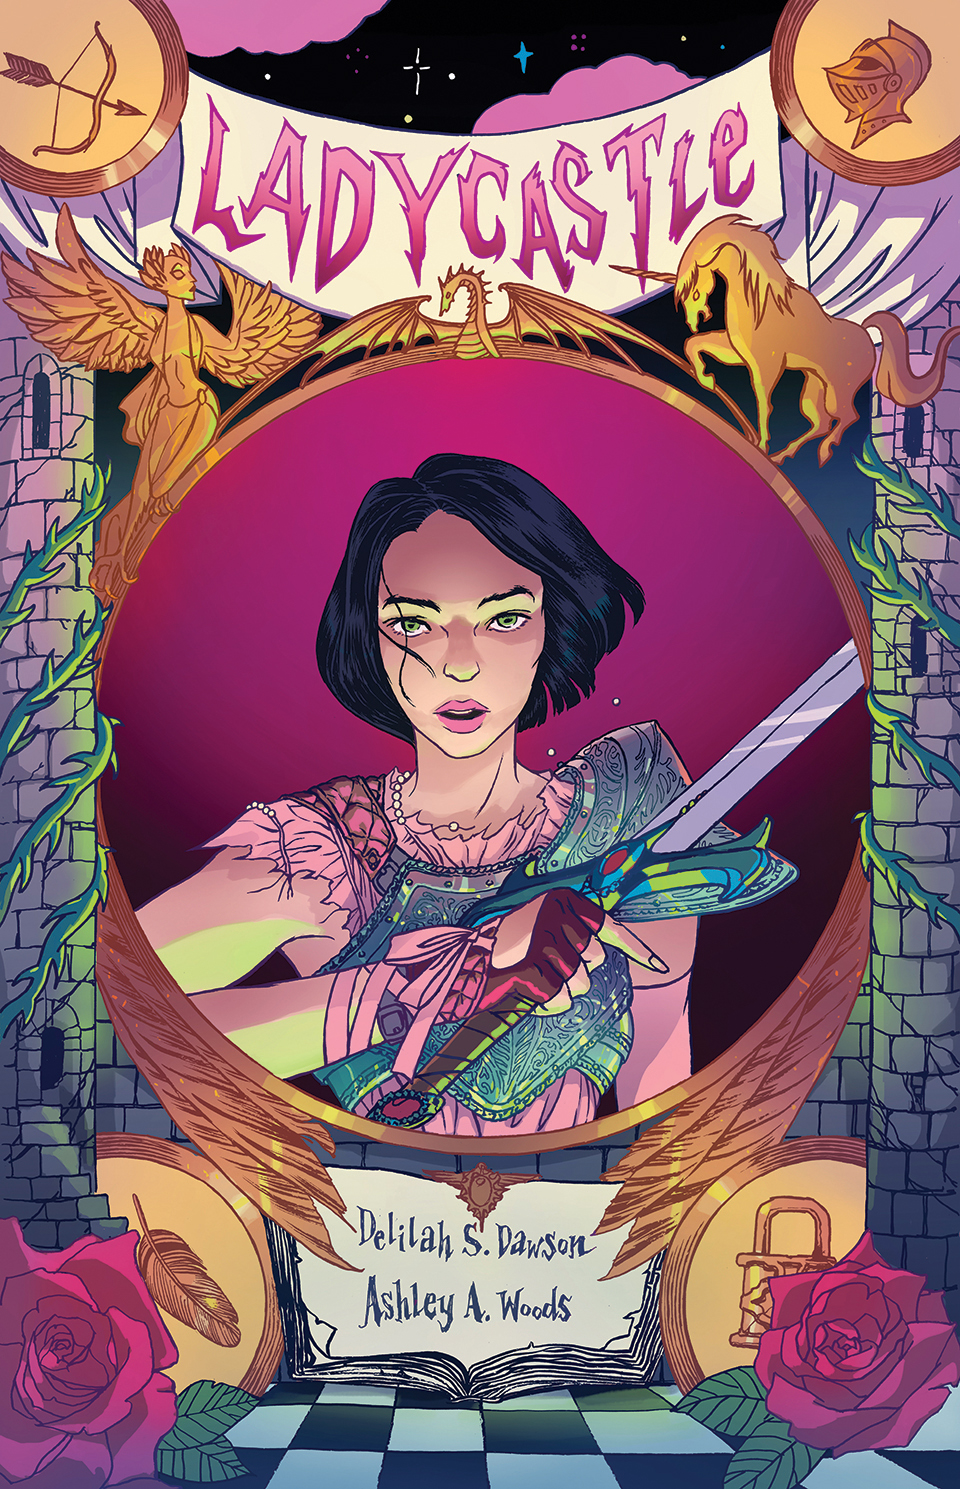 ladycastle-comicbook-cover-illustration-strong-female-protagonist-yao-xiao.jpg